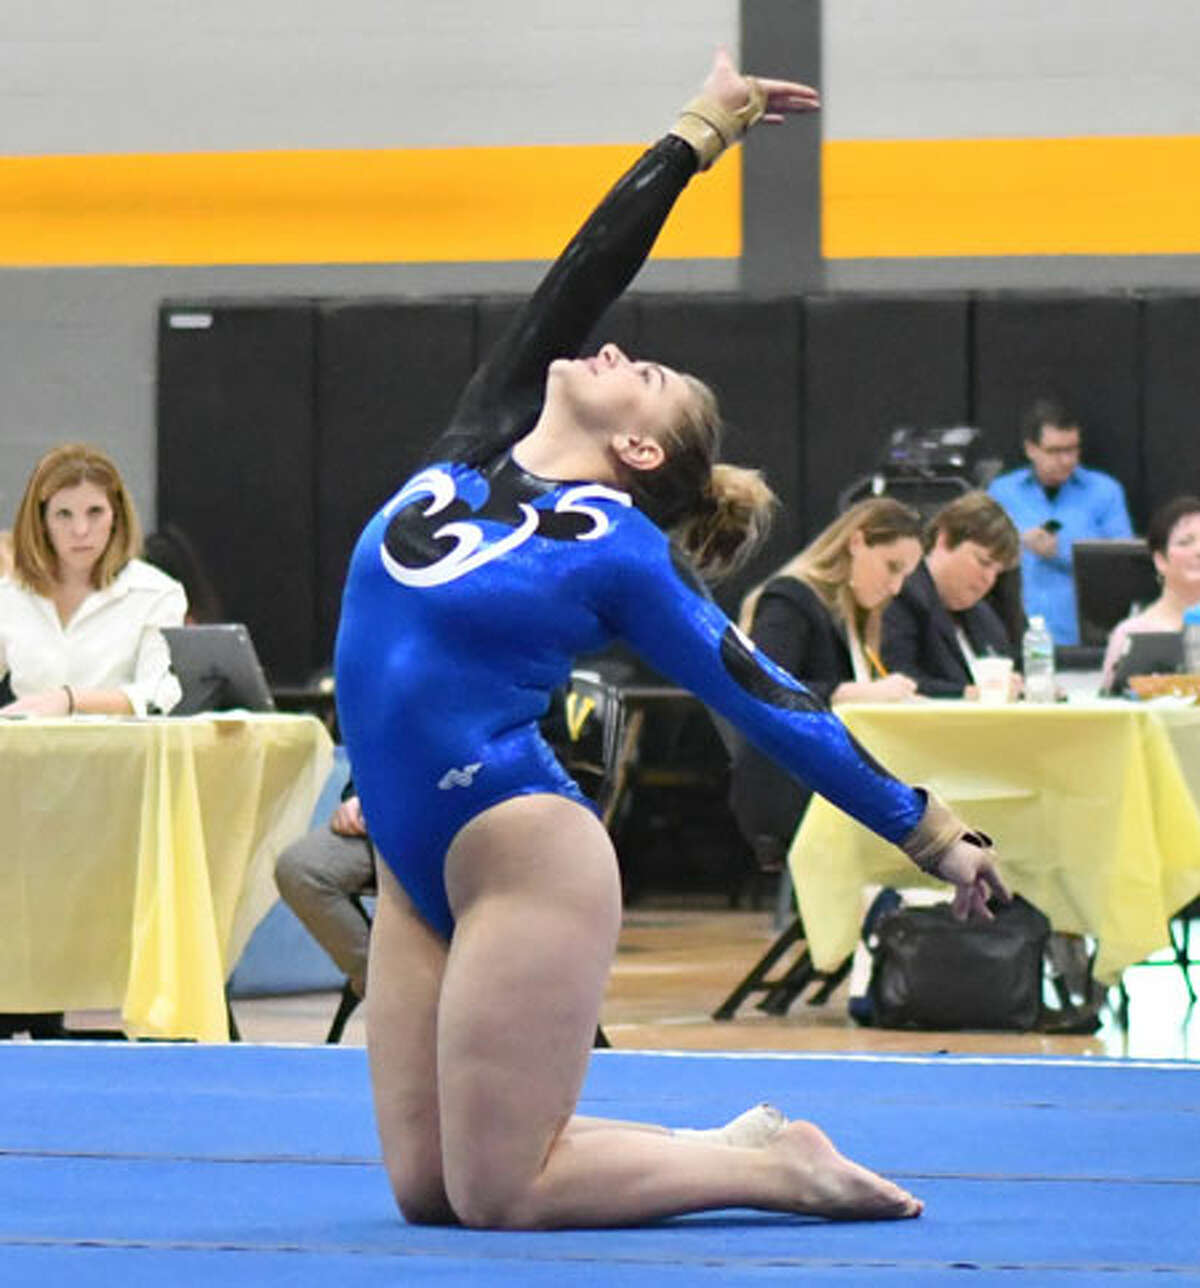 Nicole Carlo of the Darien Blue Wave competes in the floor exercise during the CIAC Class M Gymnastics Championships on Saturday February 23, 2019 at Jonathan Law High School in Milford, Connecticut. - Greg Vasil/For Hearst Connecticut Media